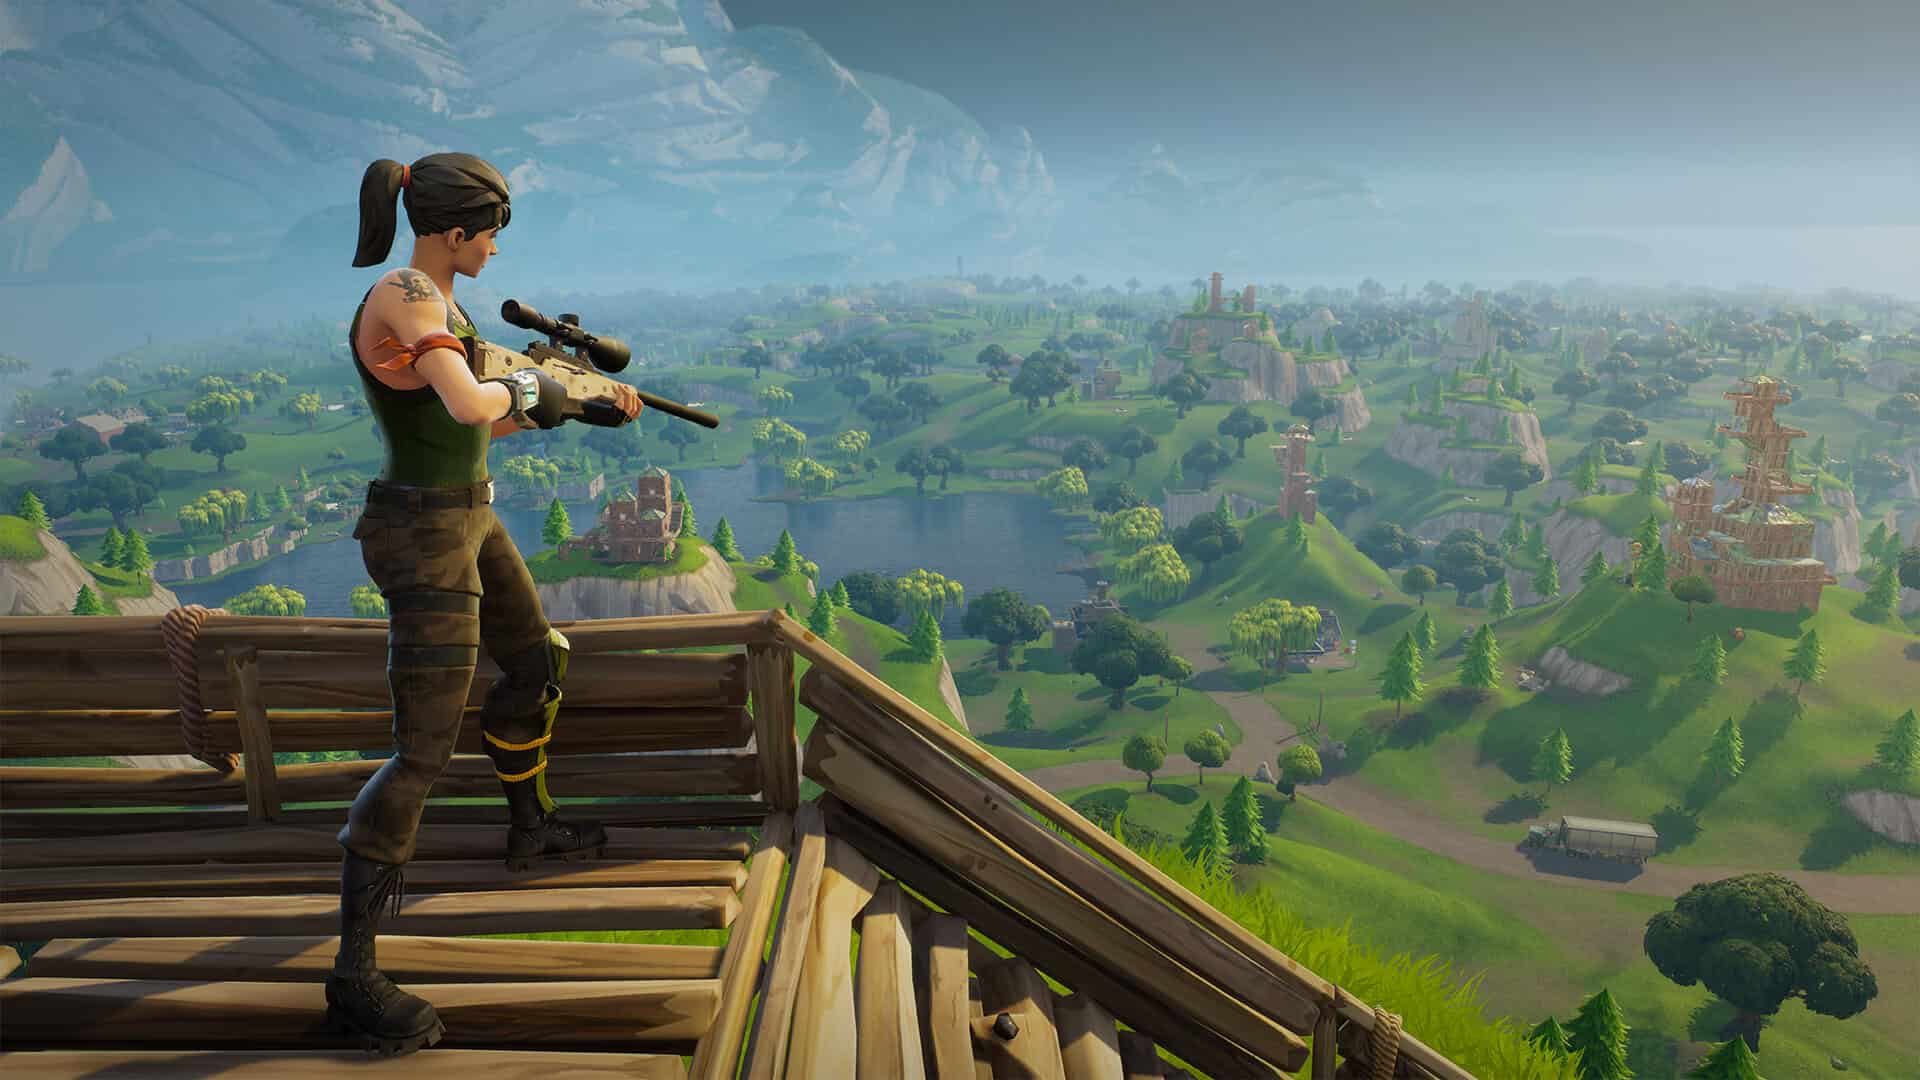 Fortnite Meteors Are Crashing Down, Act Similarly to PUBG Red Zone